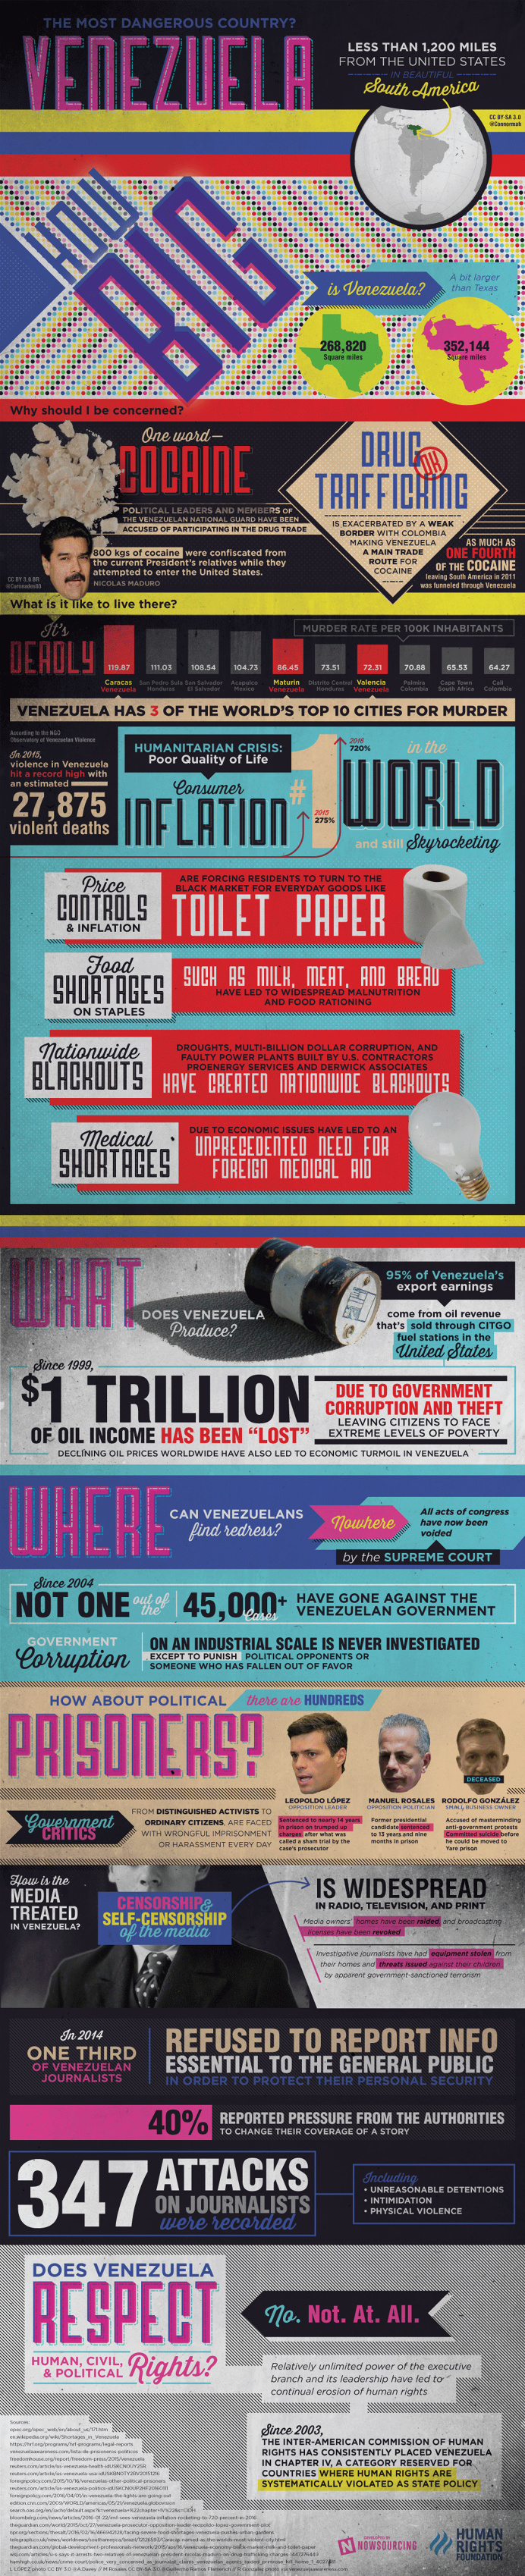 Is there corruption and repression in Venezuela? Learn more about economic and social woes from this infographic!